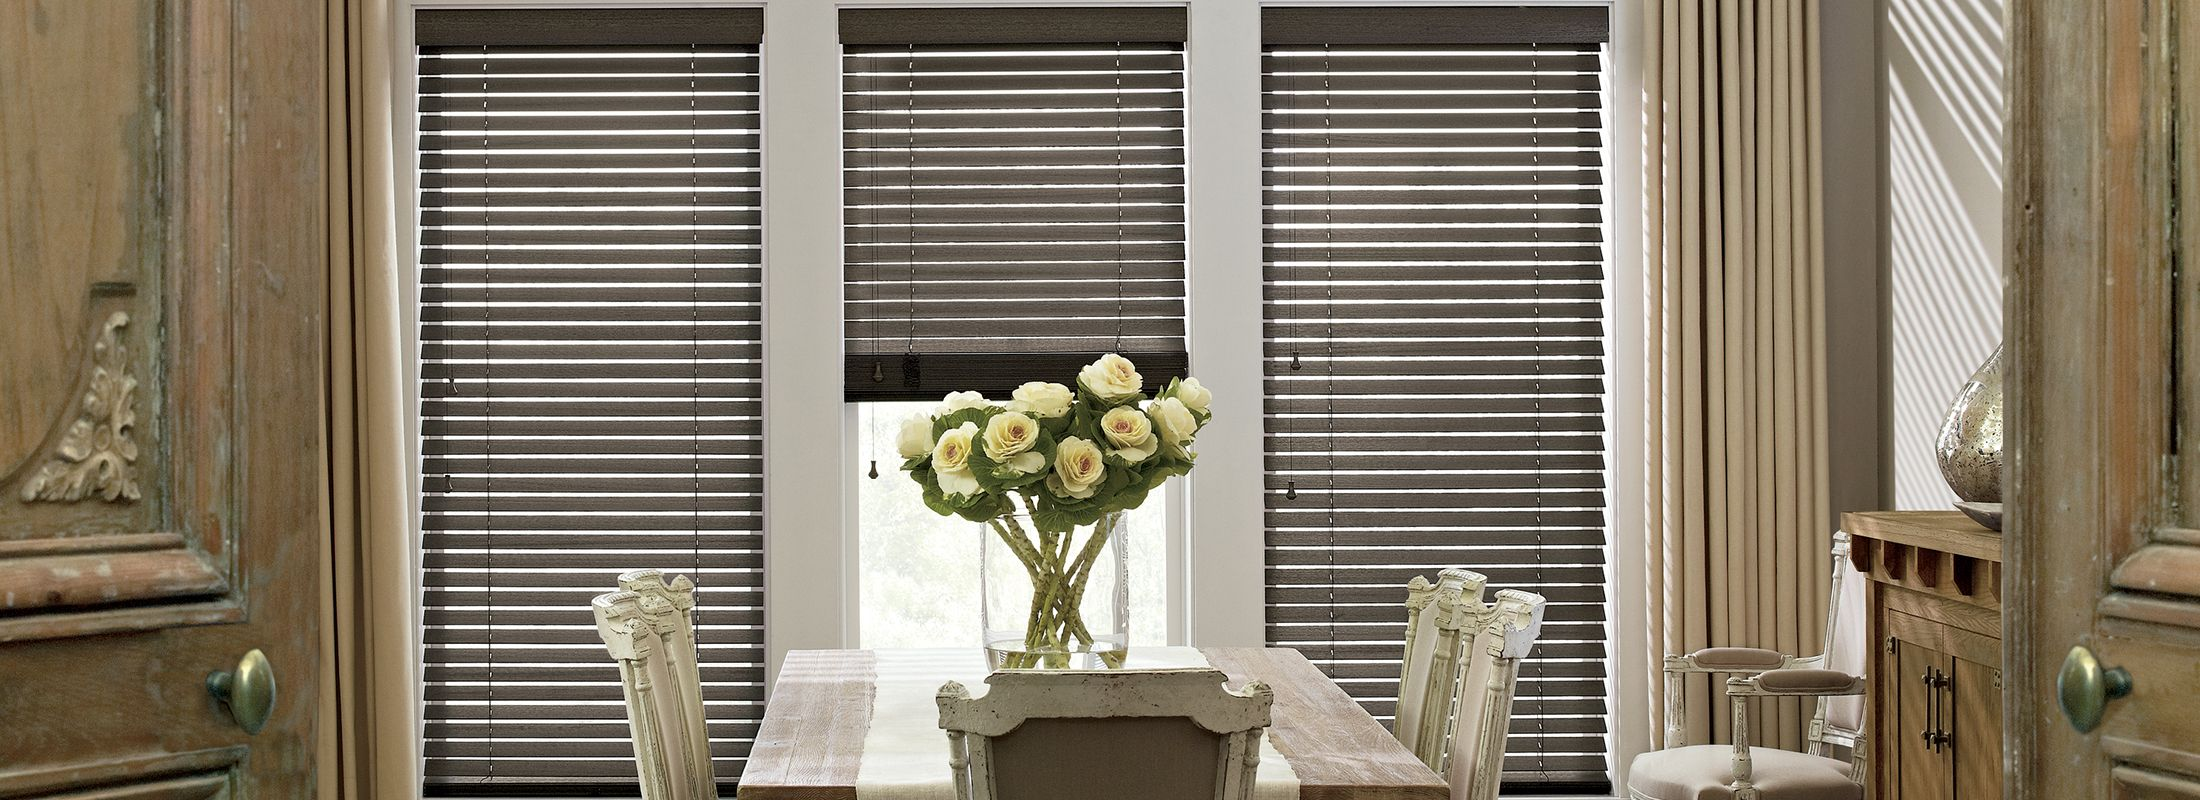 Wooden blinds in Wirebrushed Basswood Flint Gray - Parkland